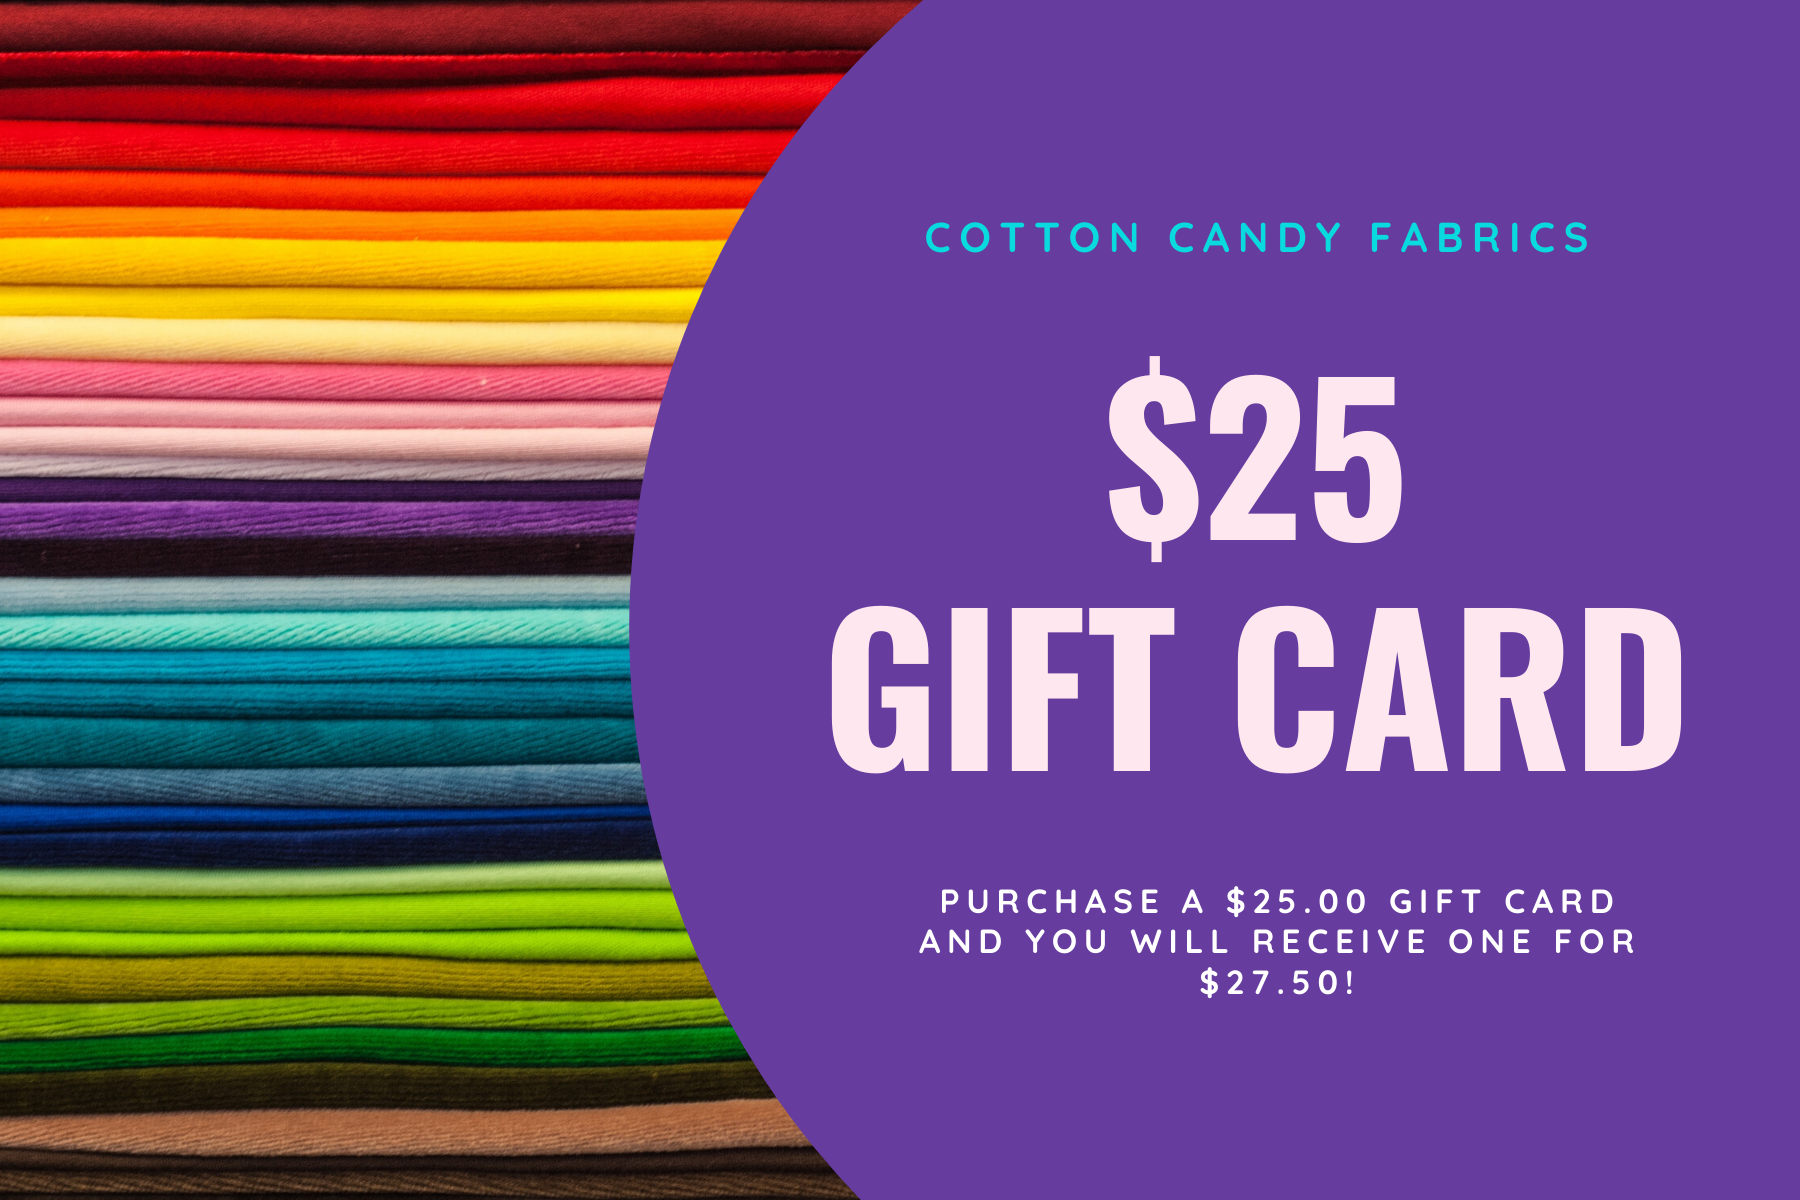 $25.00 Gift Certificate to Cotton Candy Fabrics